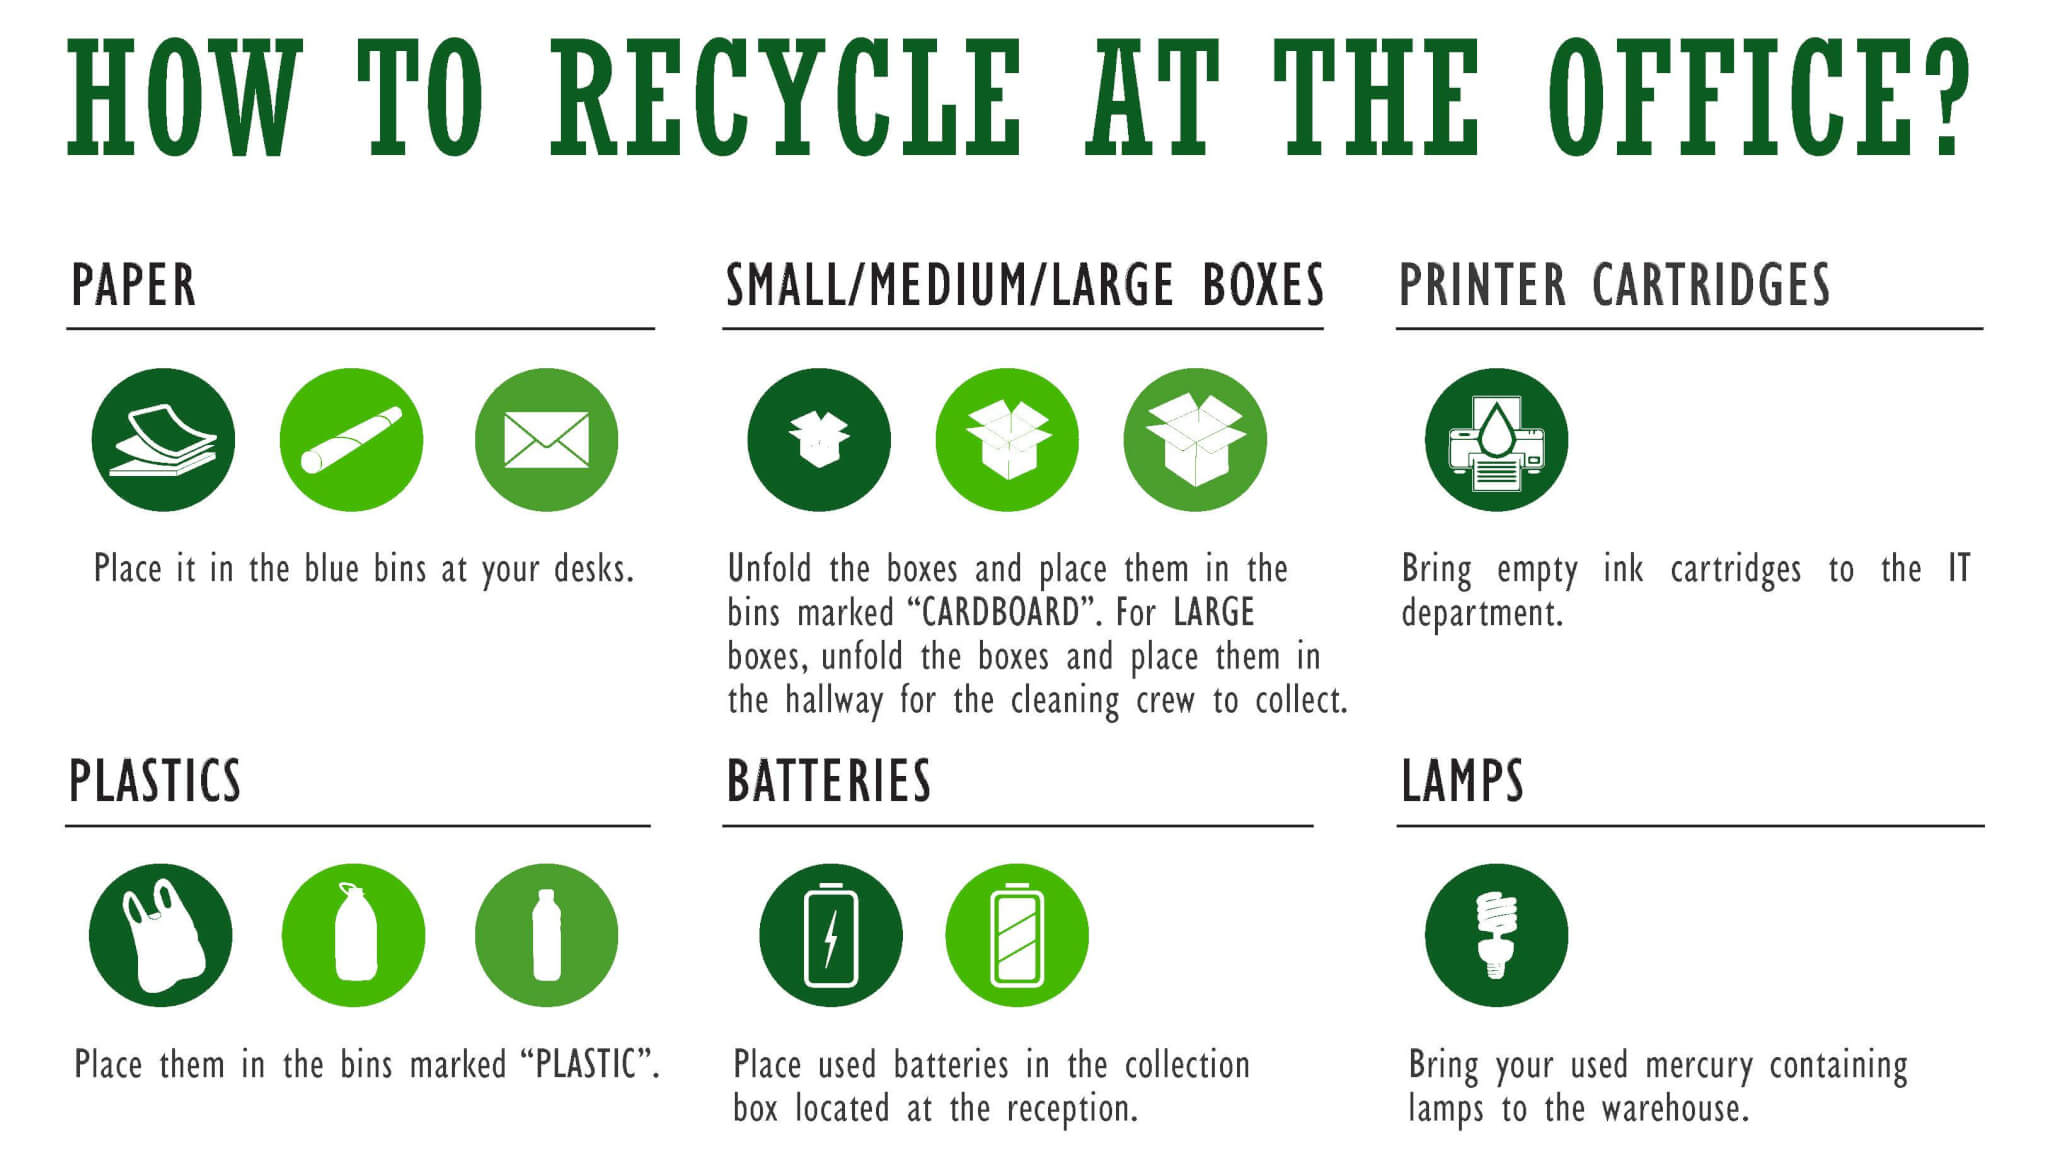 How to recycle at the office